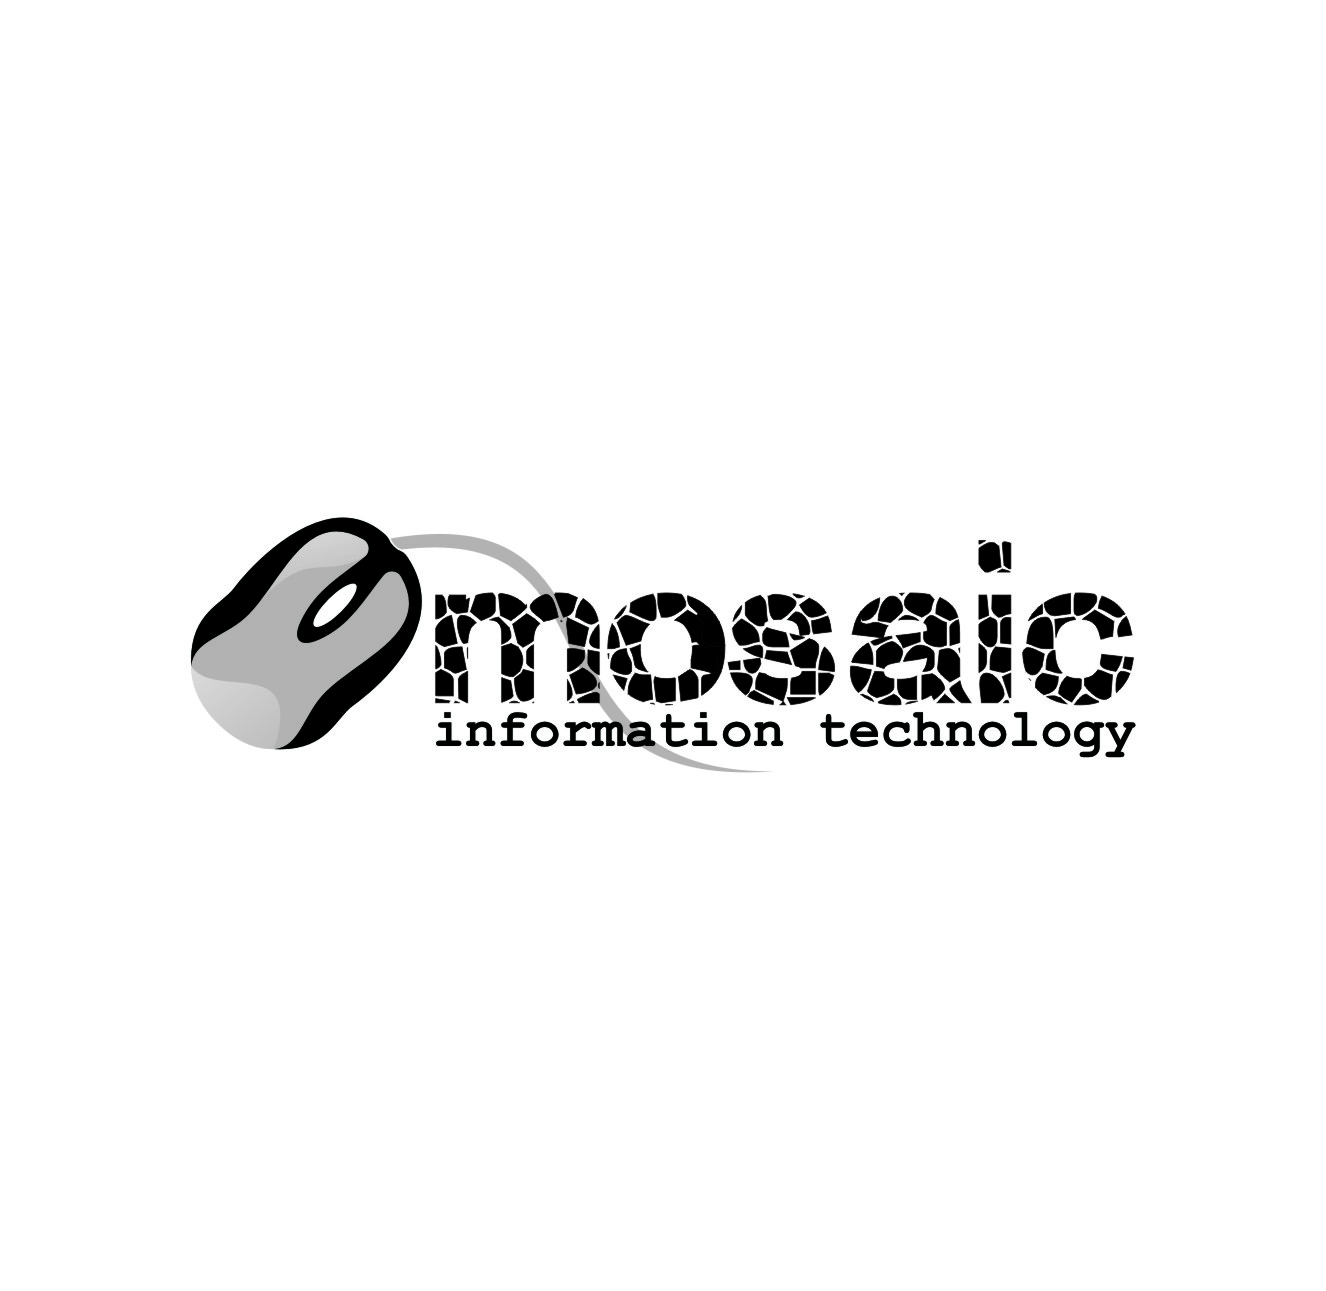 Logo Design by Private User - Entry No. 70 in the Logo Design Contest Mosaic Information Technology Logo Design.